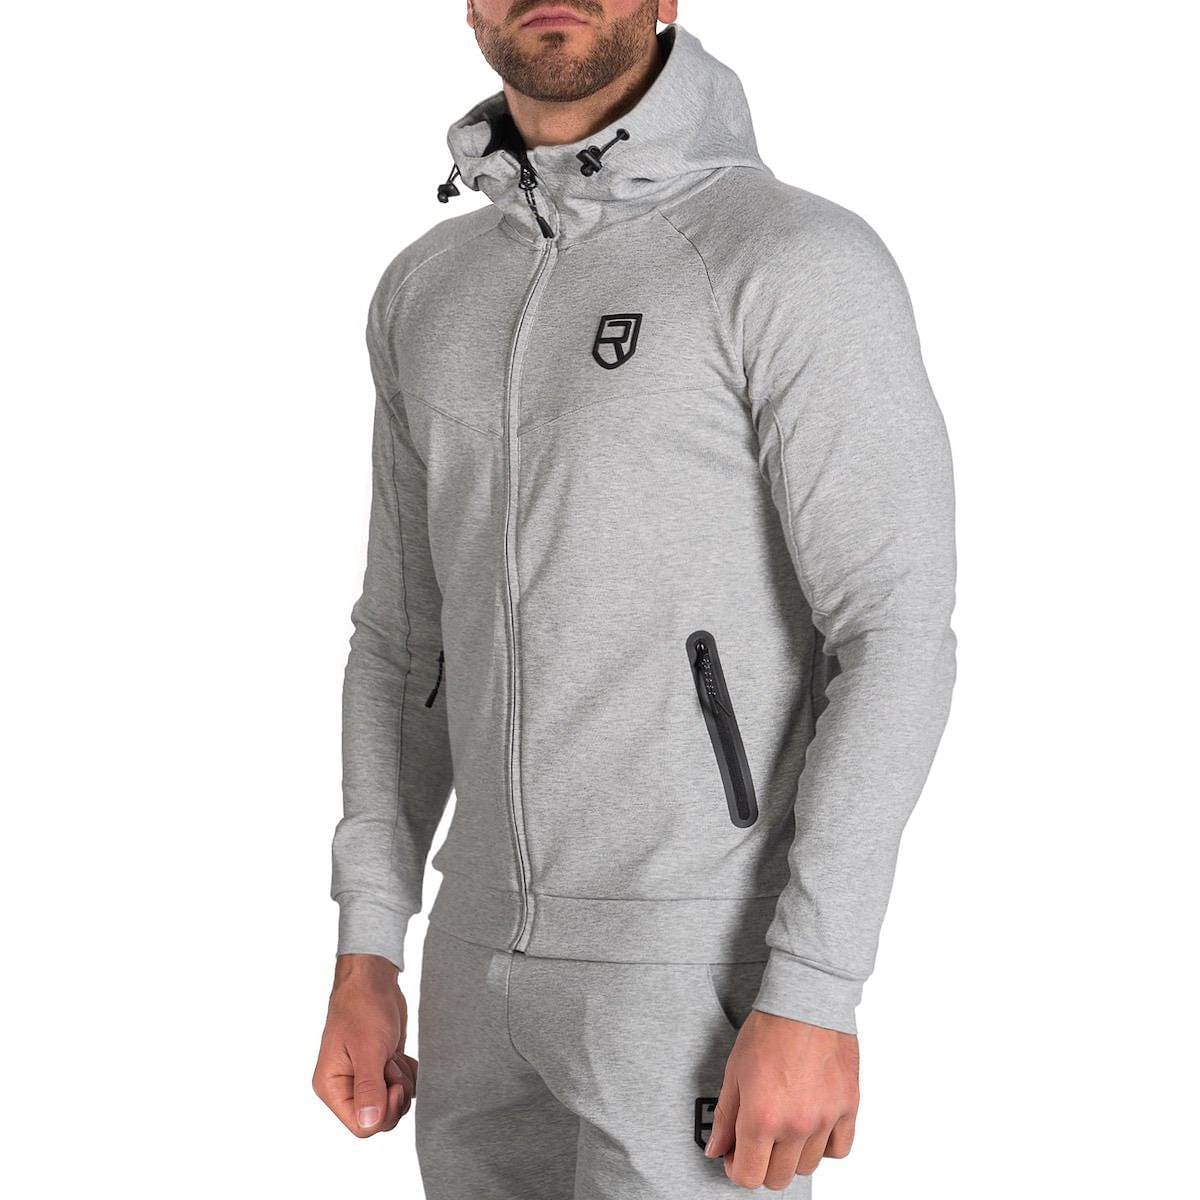 Peak Hoodie - Light Grey